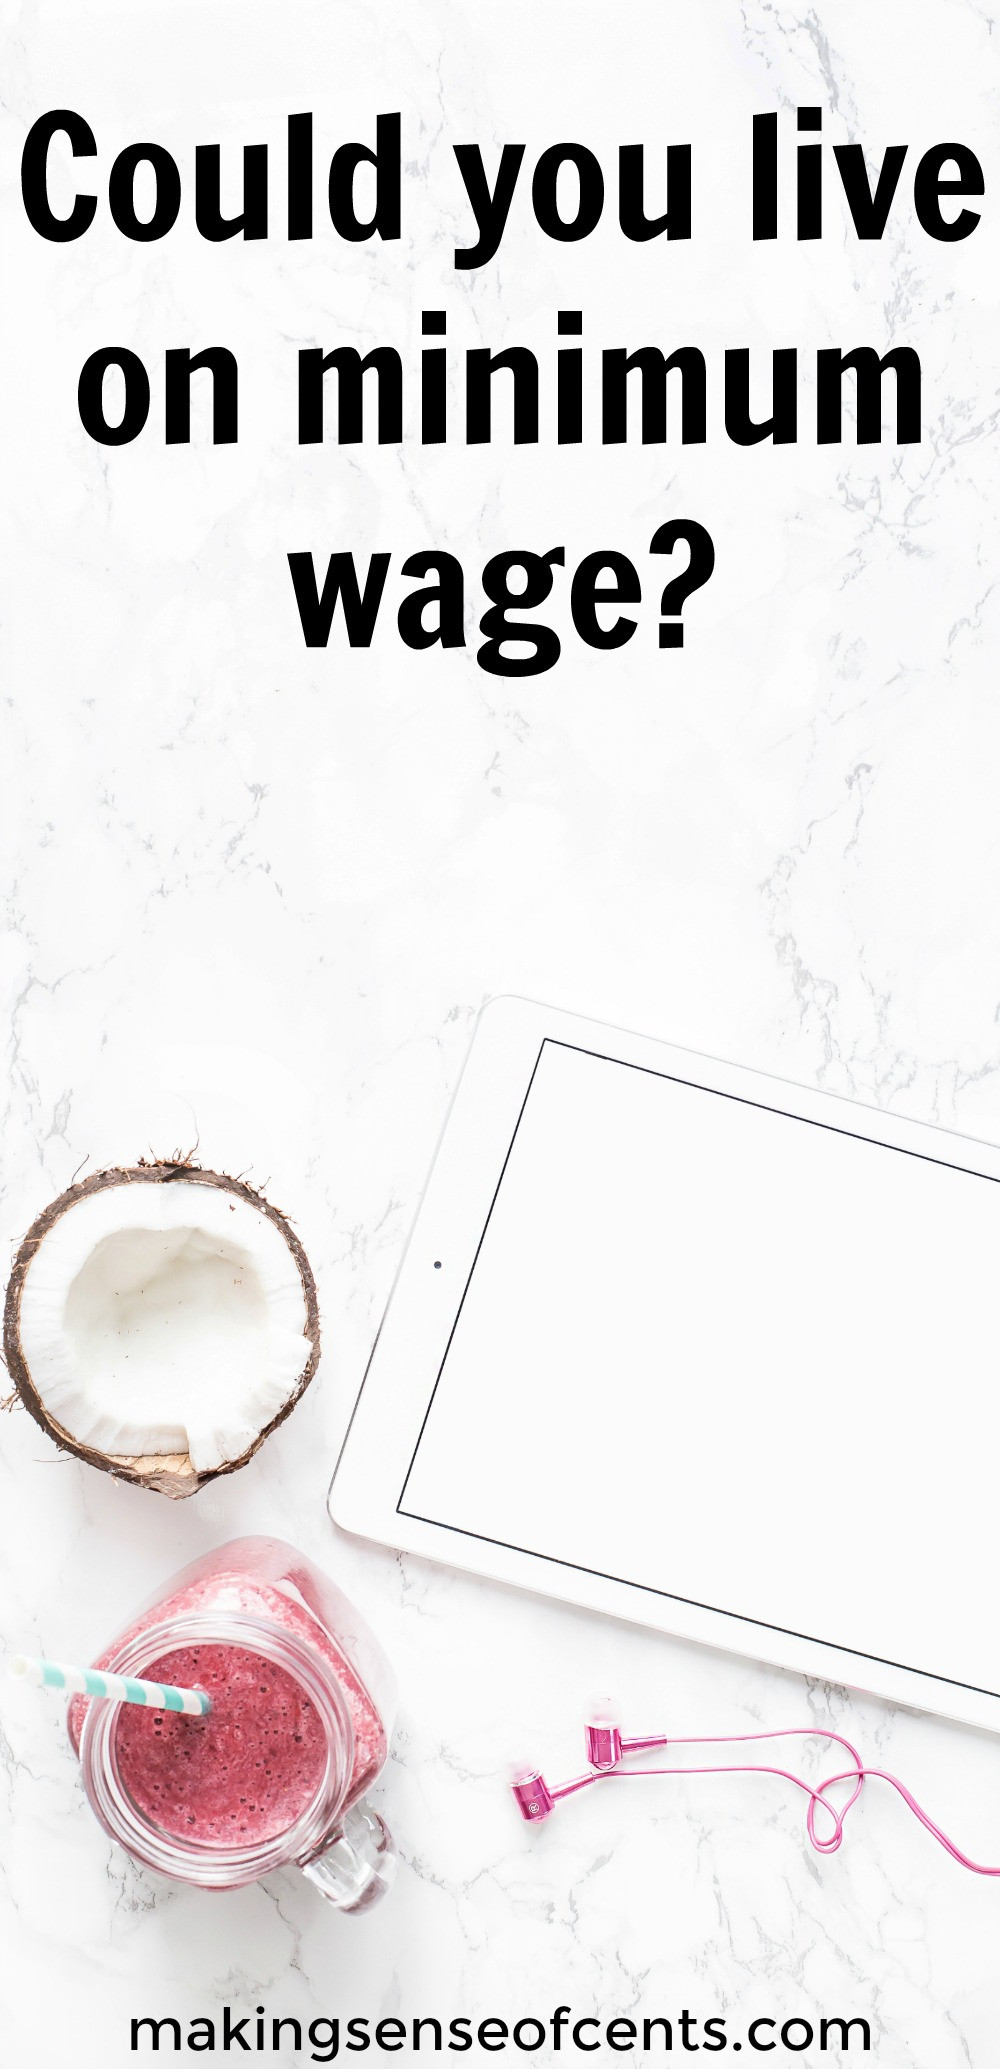 Could you live on minimum wage? Find out more here.